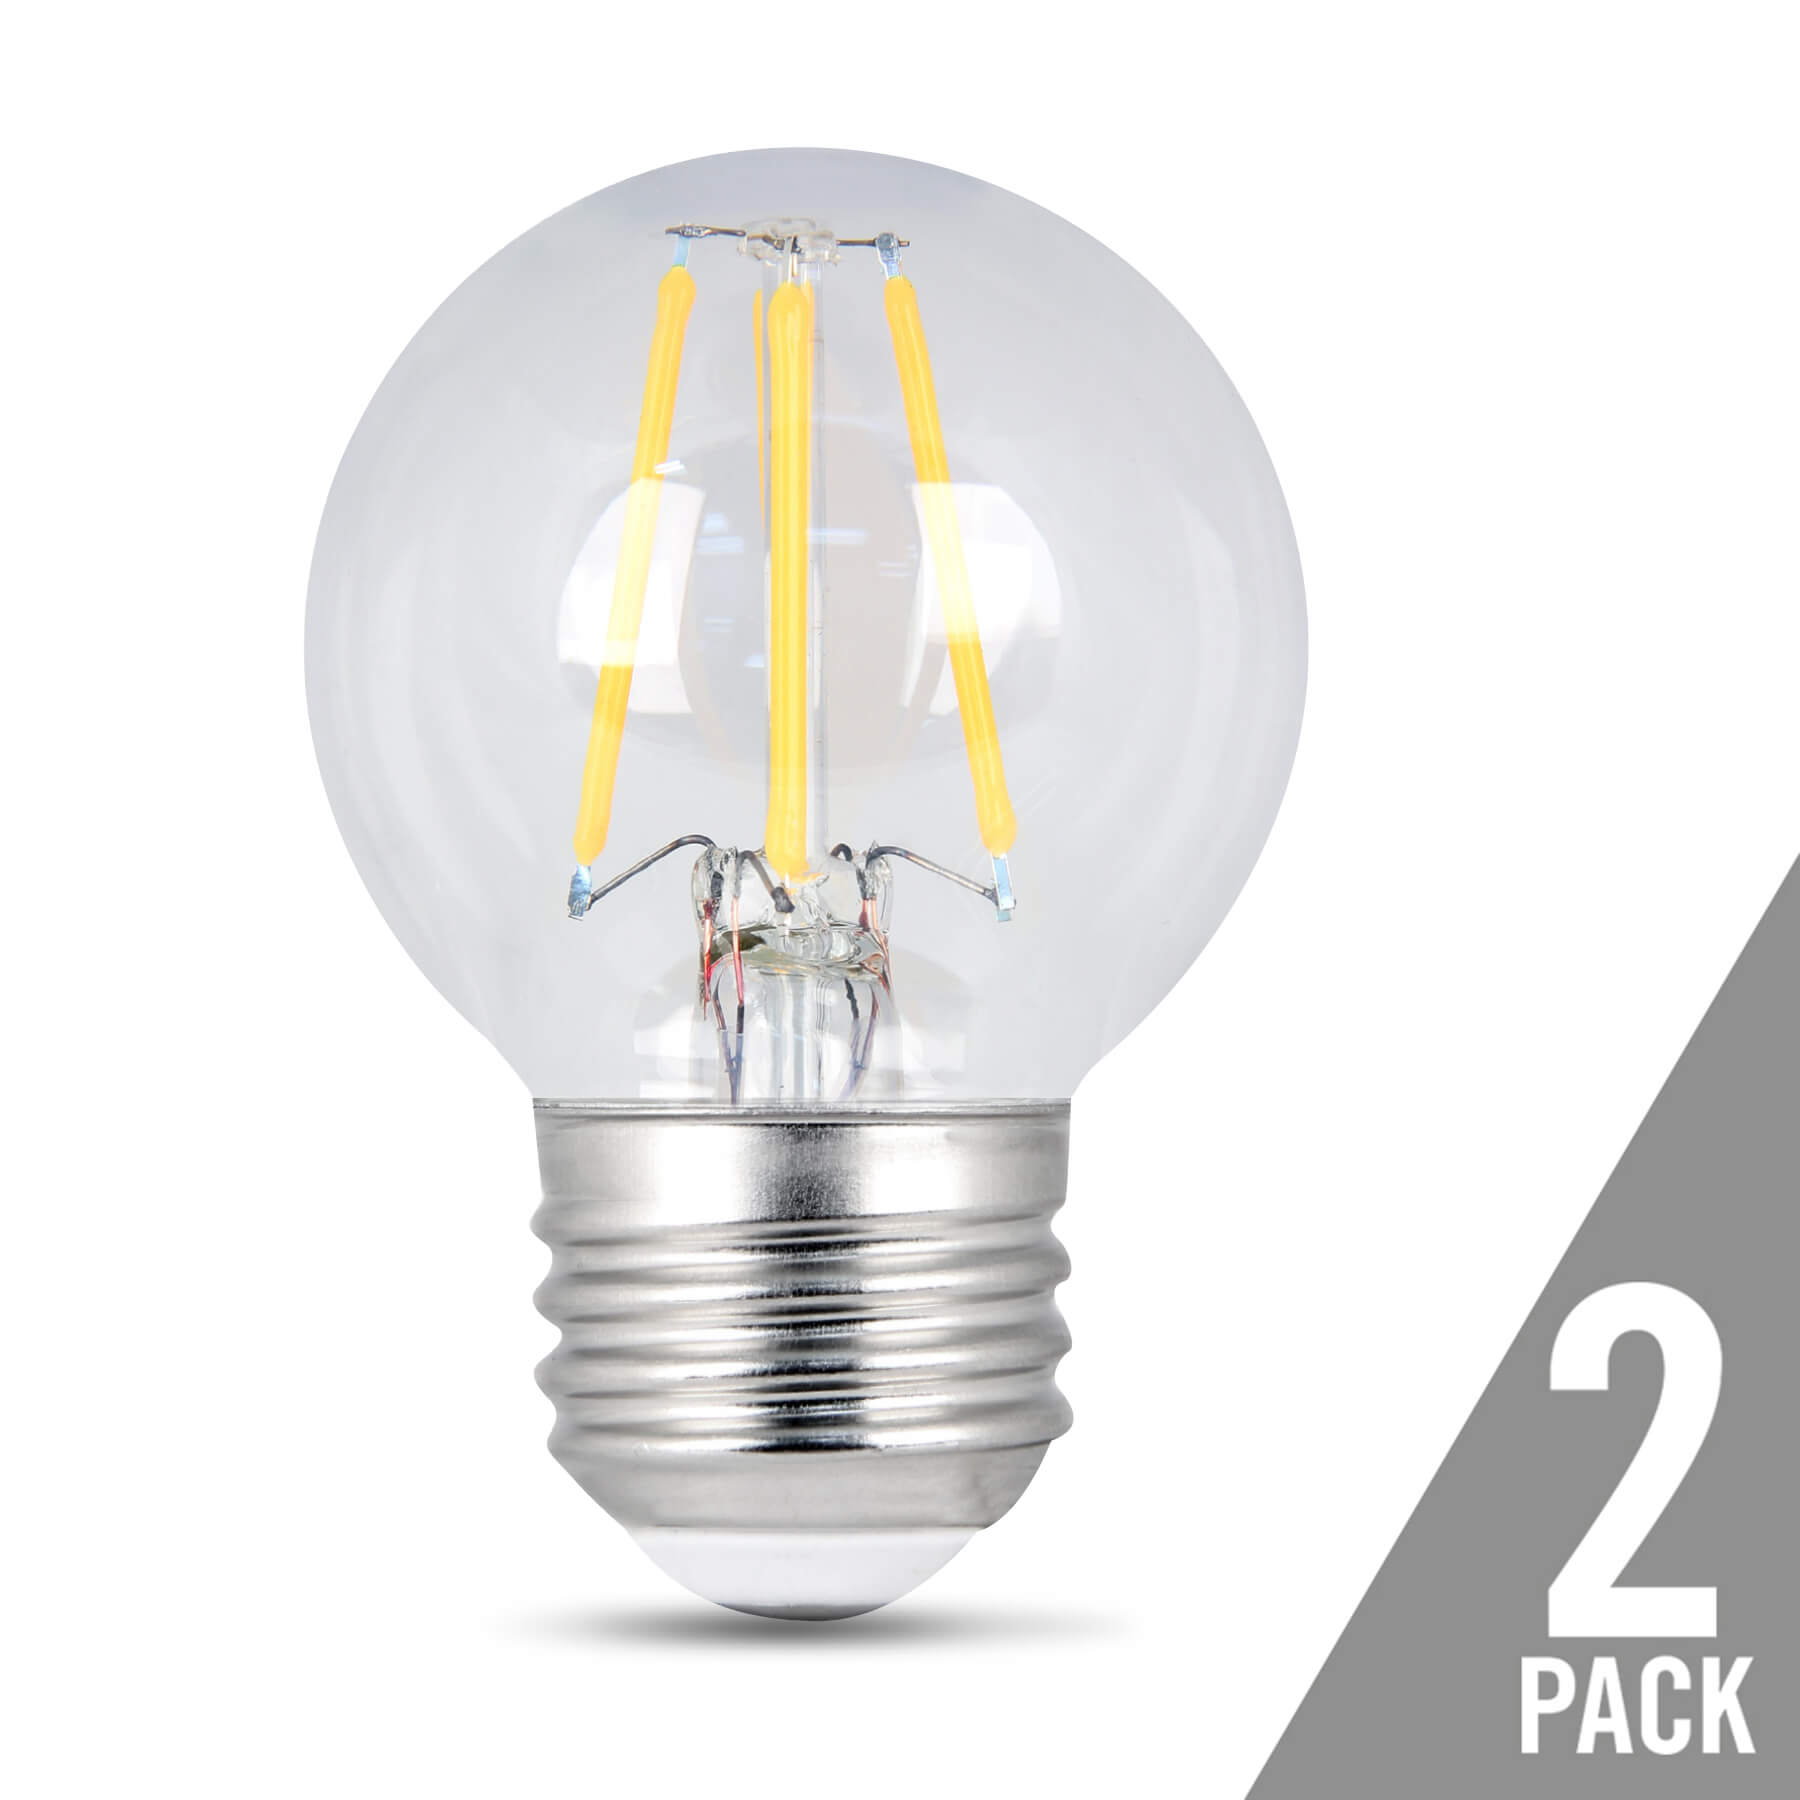 Where Can I Get Light Bulbs 300 Lumen Vintage 2700k Dimmable Led G16 1 2 Feit Electric